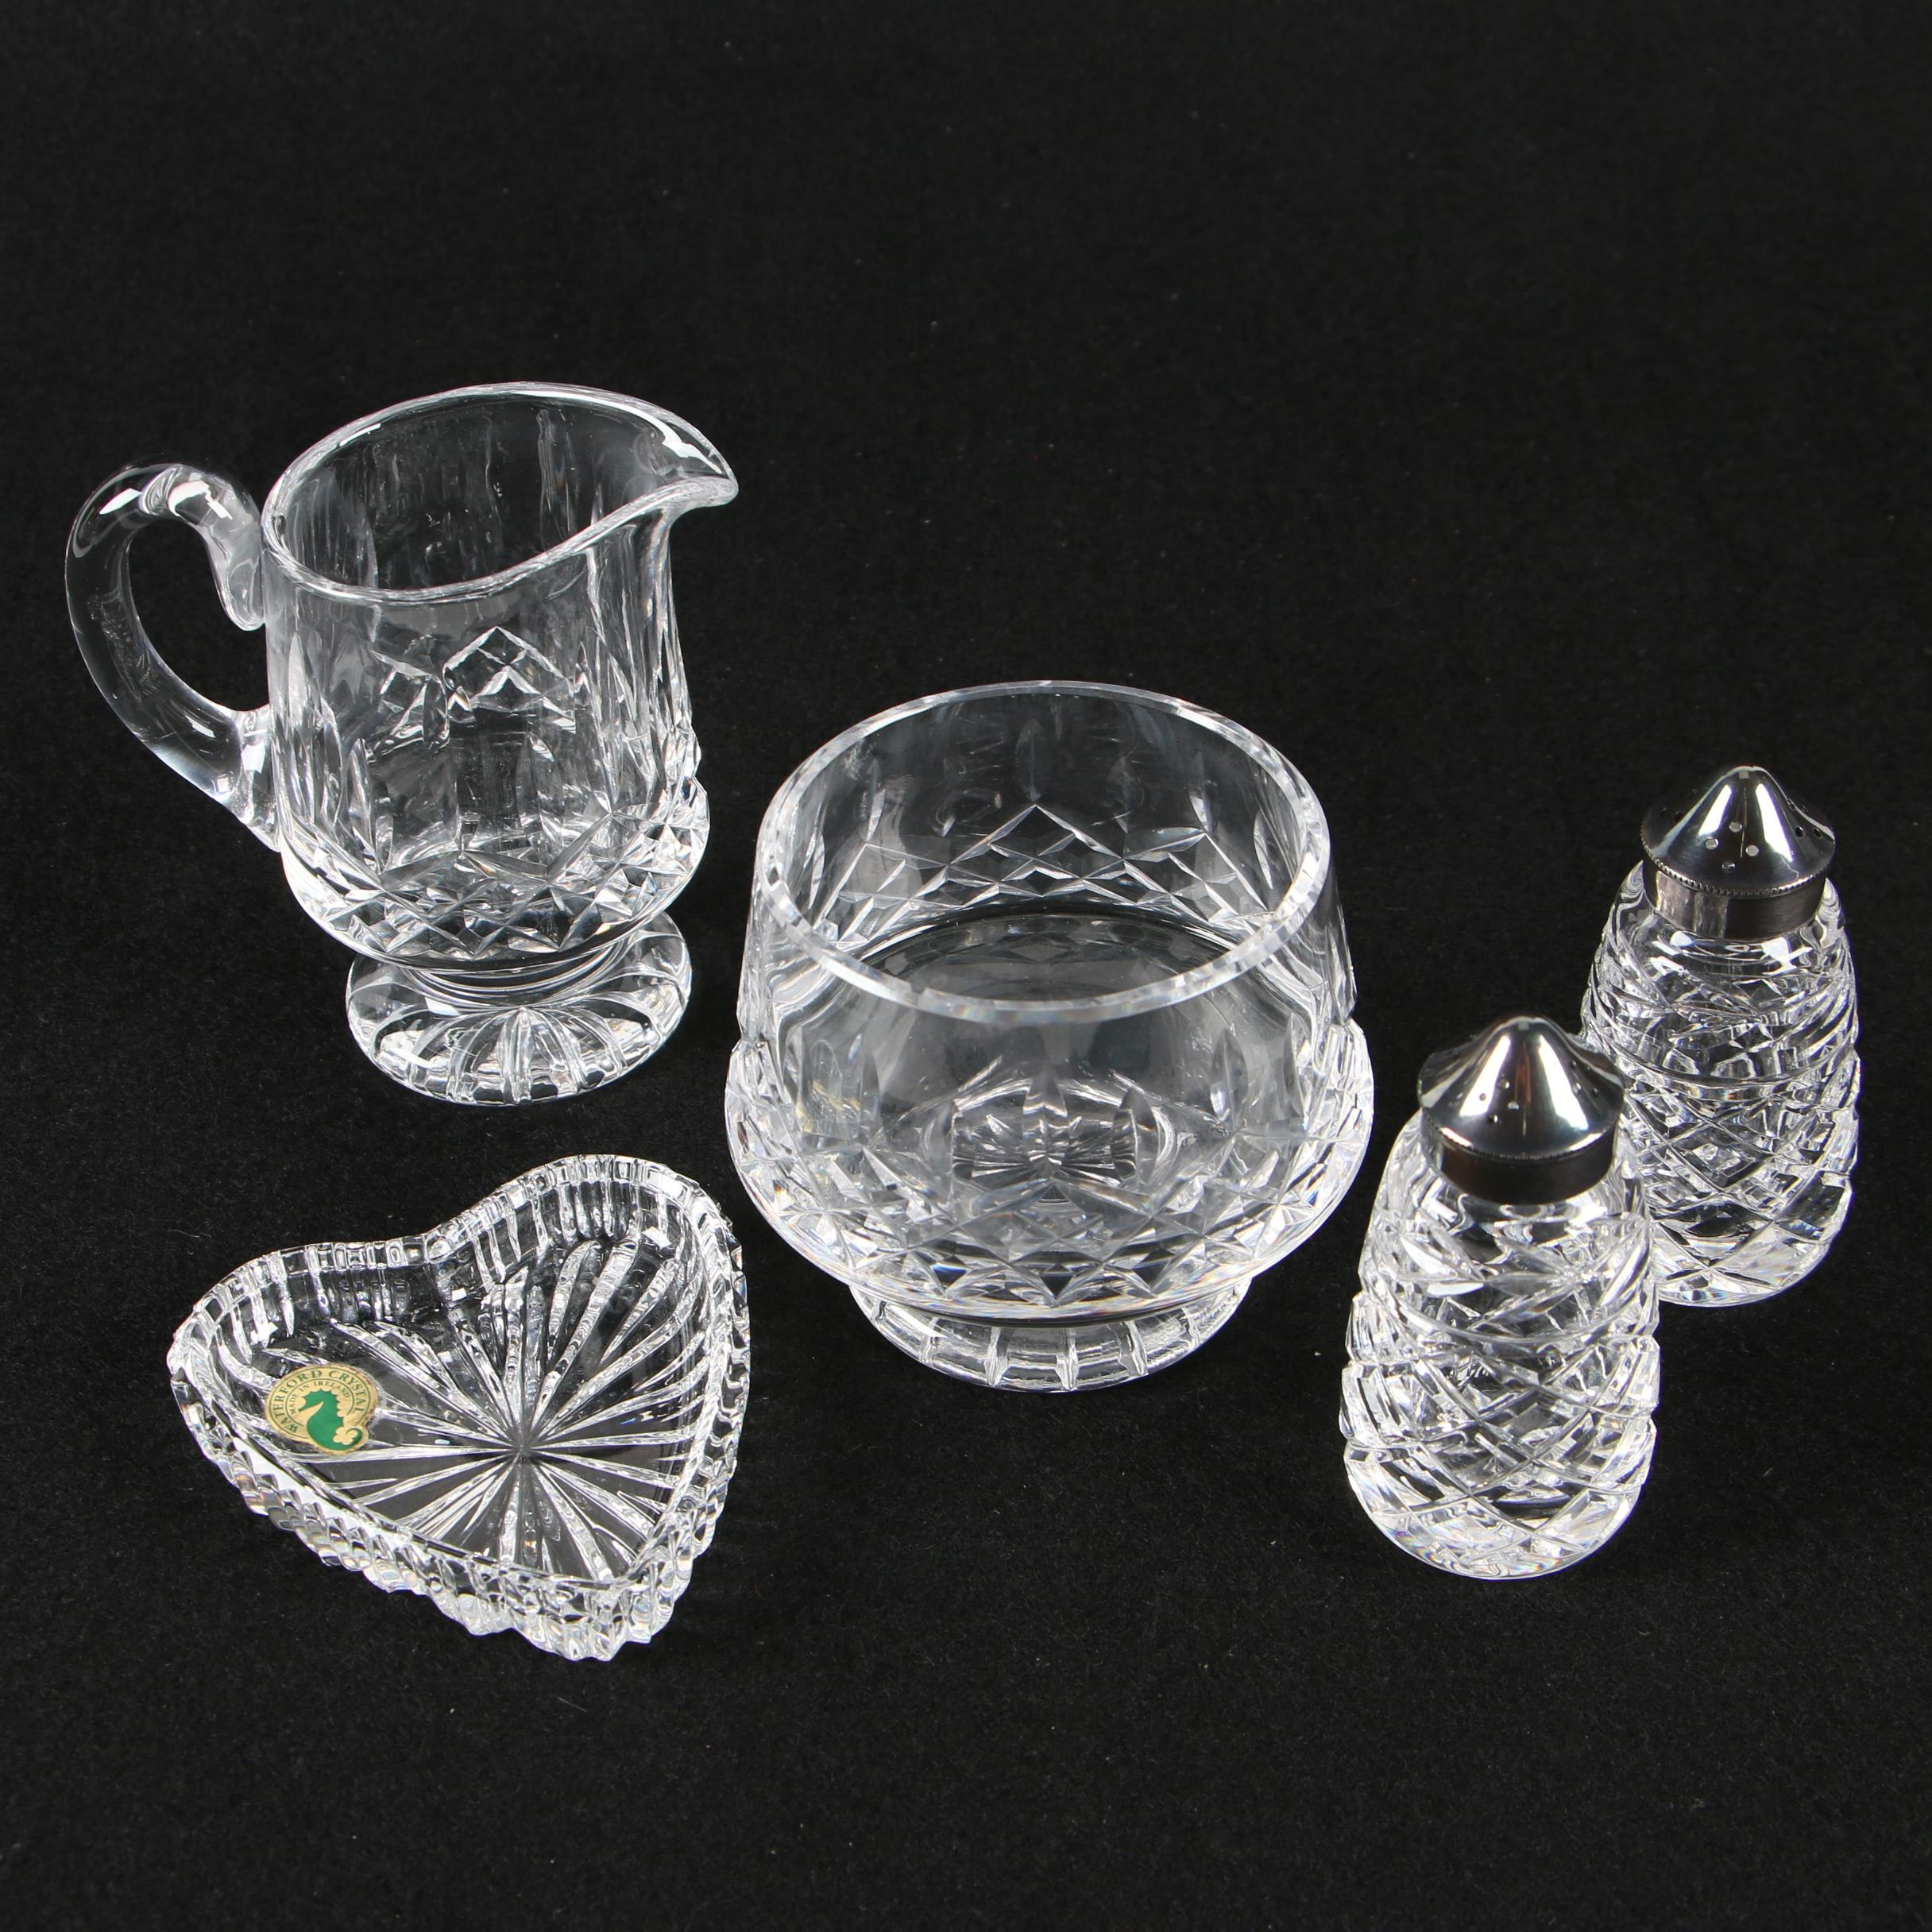 Waterford Crystal Bowl, Salt and Pepper Shakers, and Crystal Creamer, 20th Cent